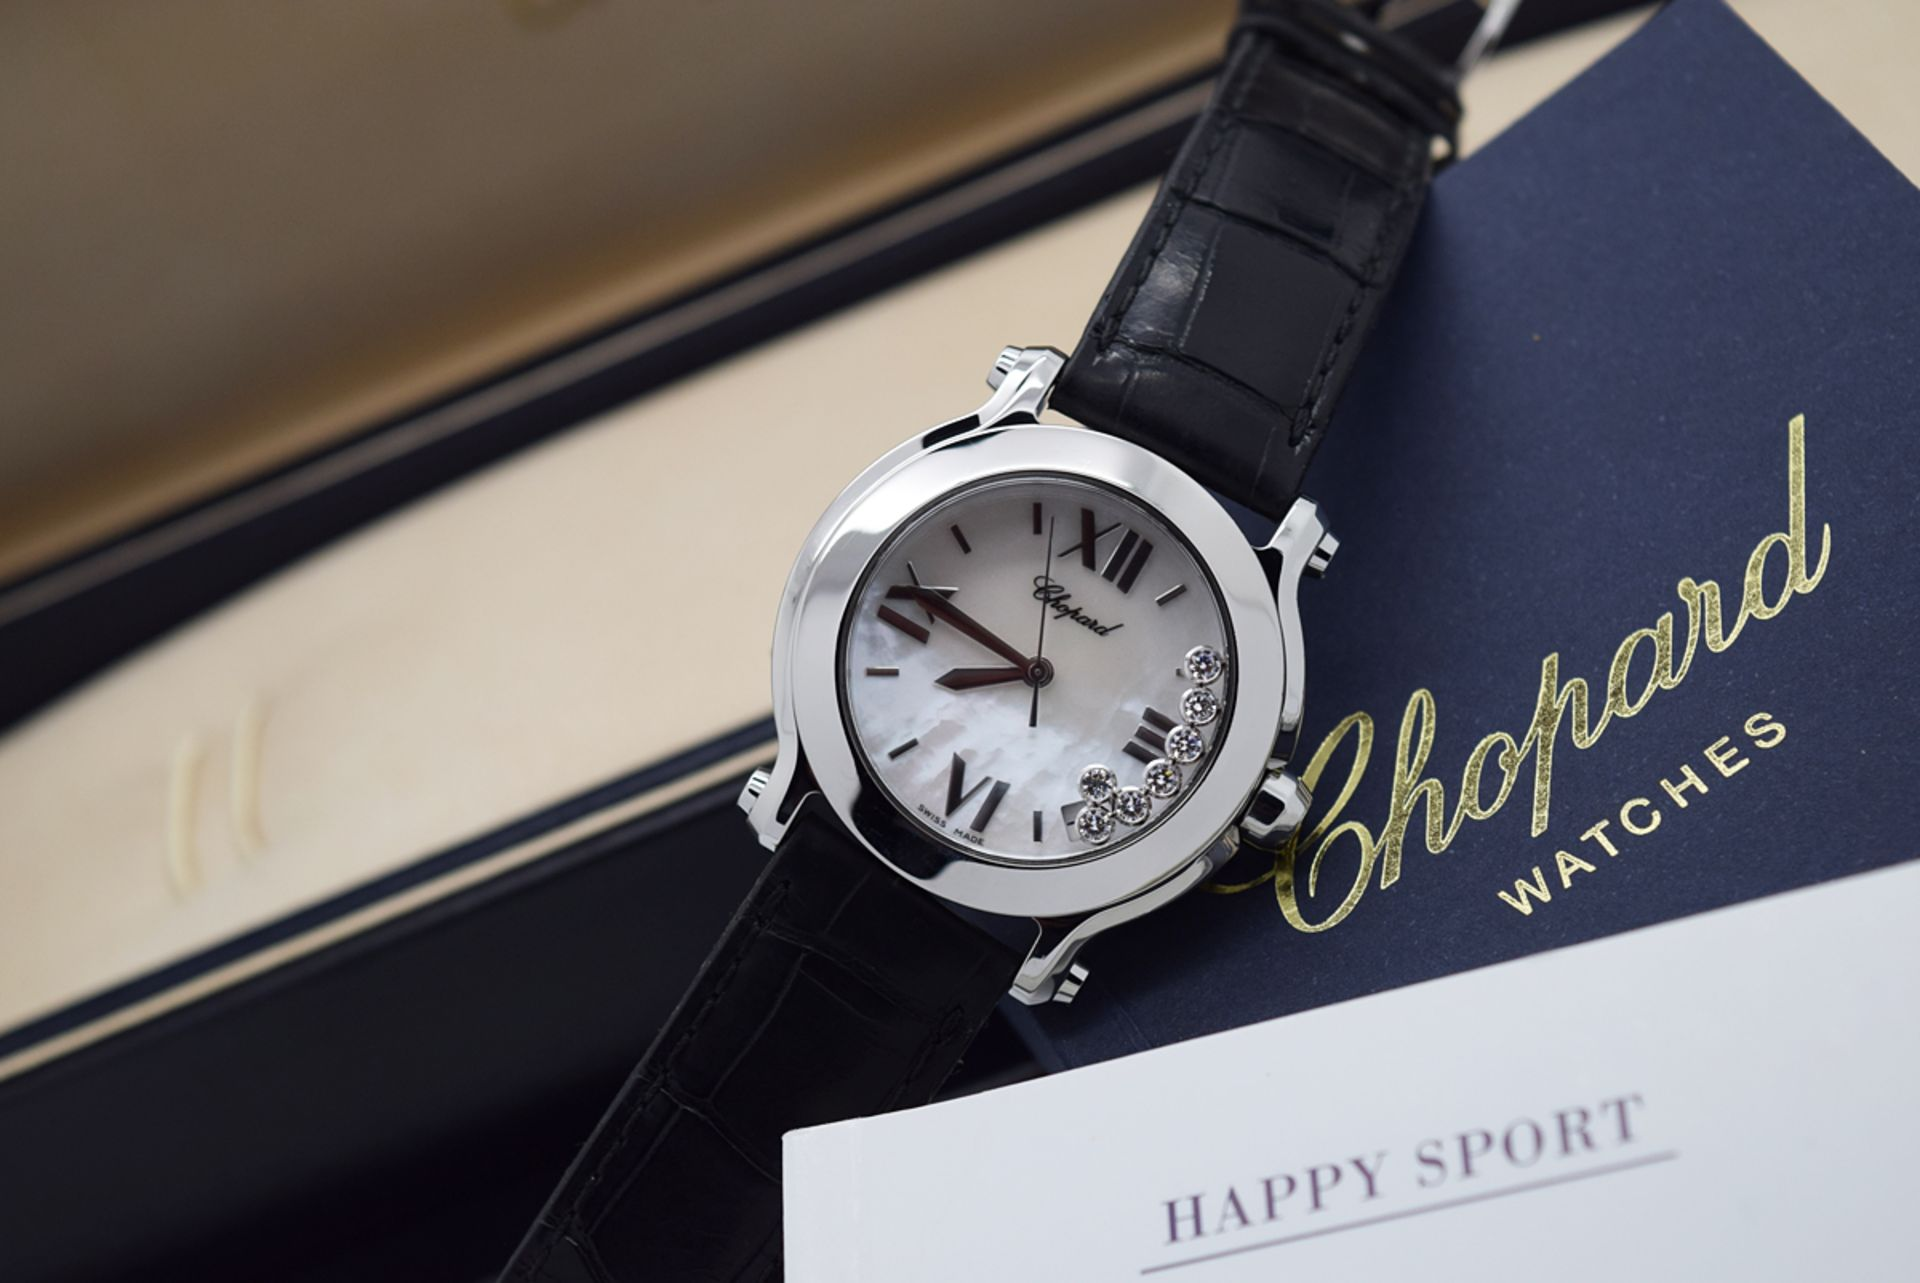 Chopard Happy Sport - Diamond Model with Mother of Pearl Dial! - Image 3 of 12